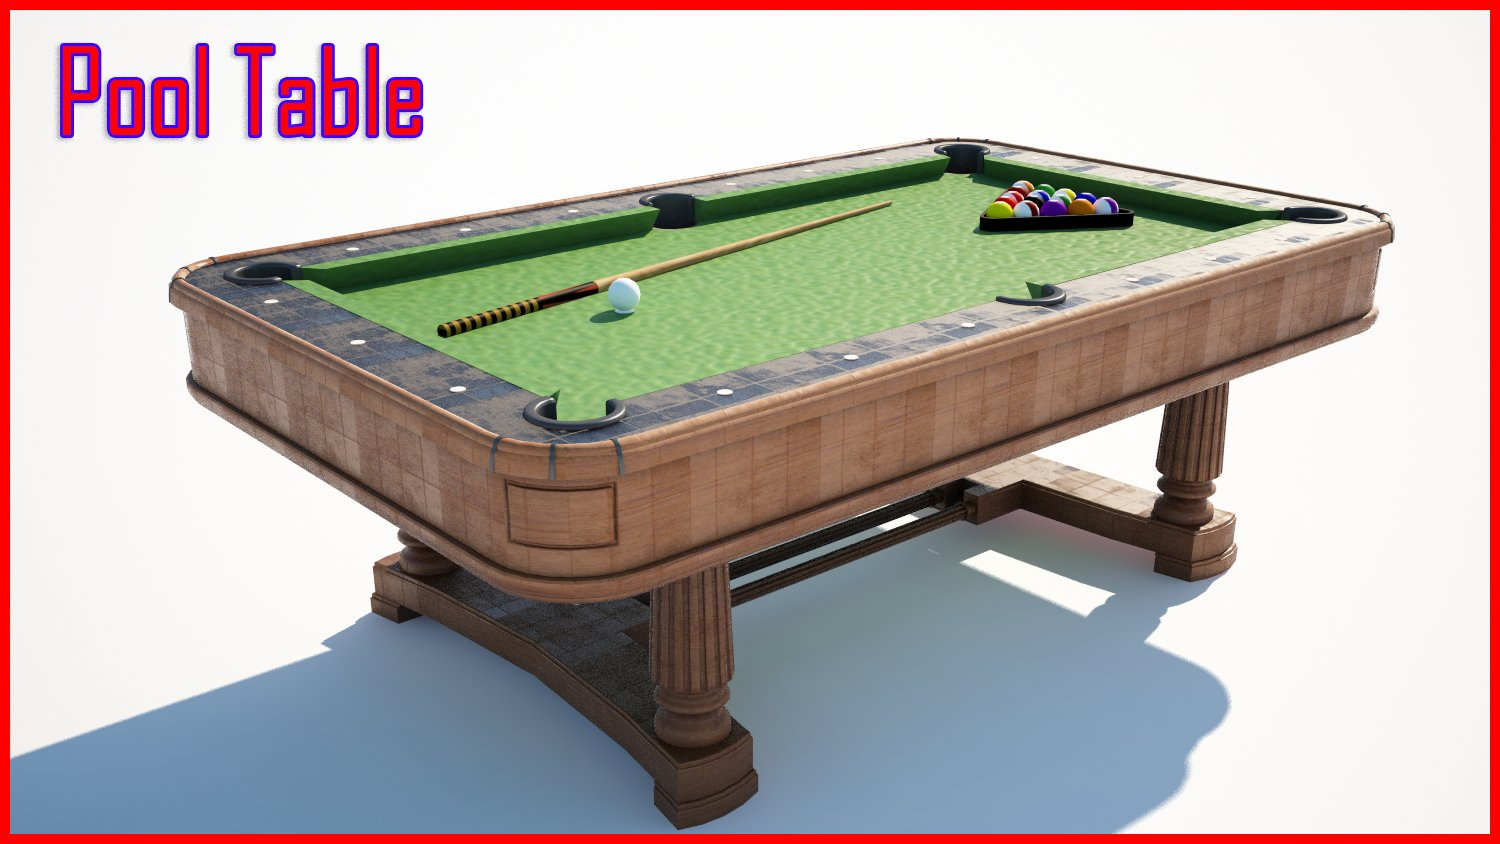 leg store table folding mdf with tennis liberty bed and games tables pool top tekscore home billiard